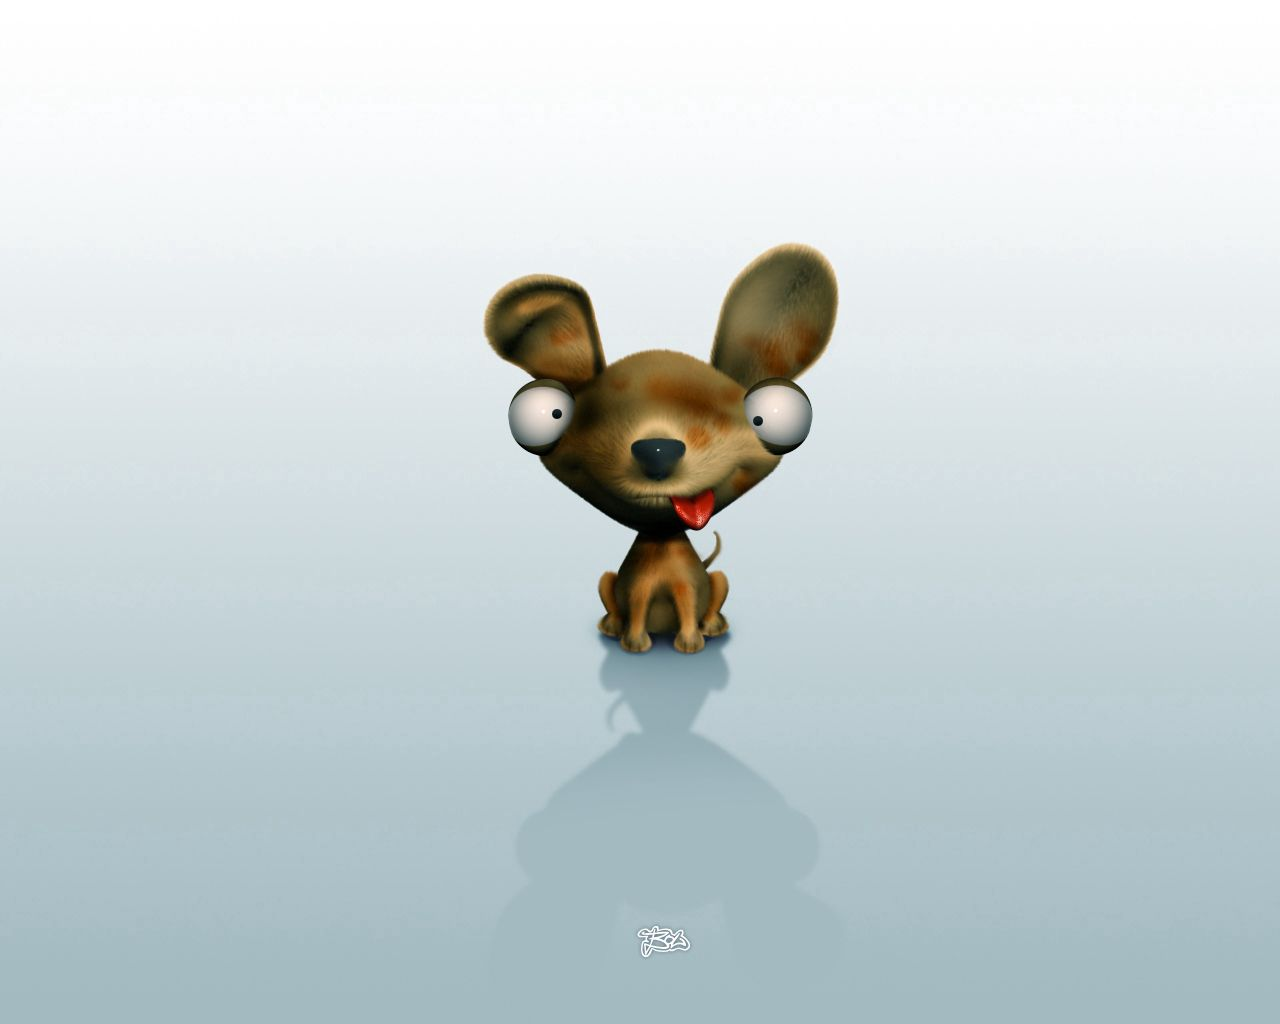 88465 download wallpaper Vector, Chihuahua, Funny, Dog, Puppy, Picture, Drawing screensavers and pictures for free